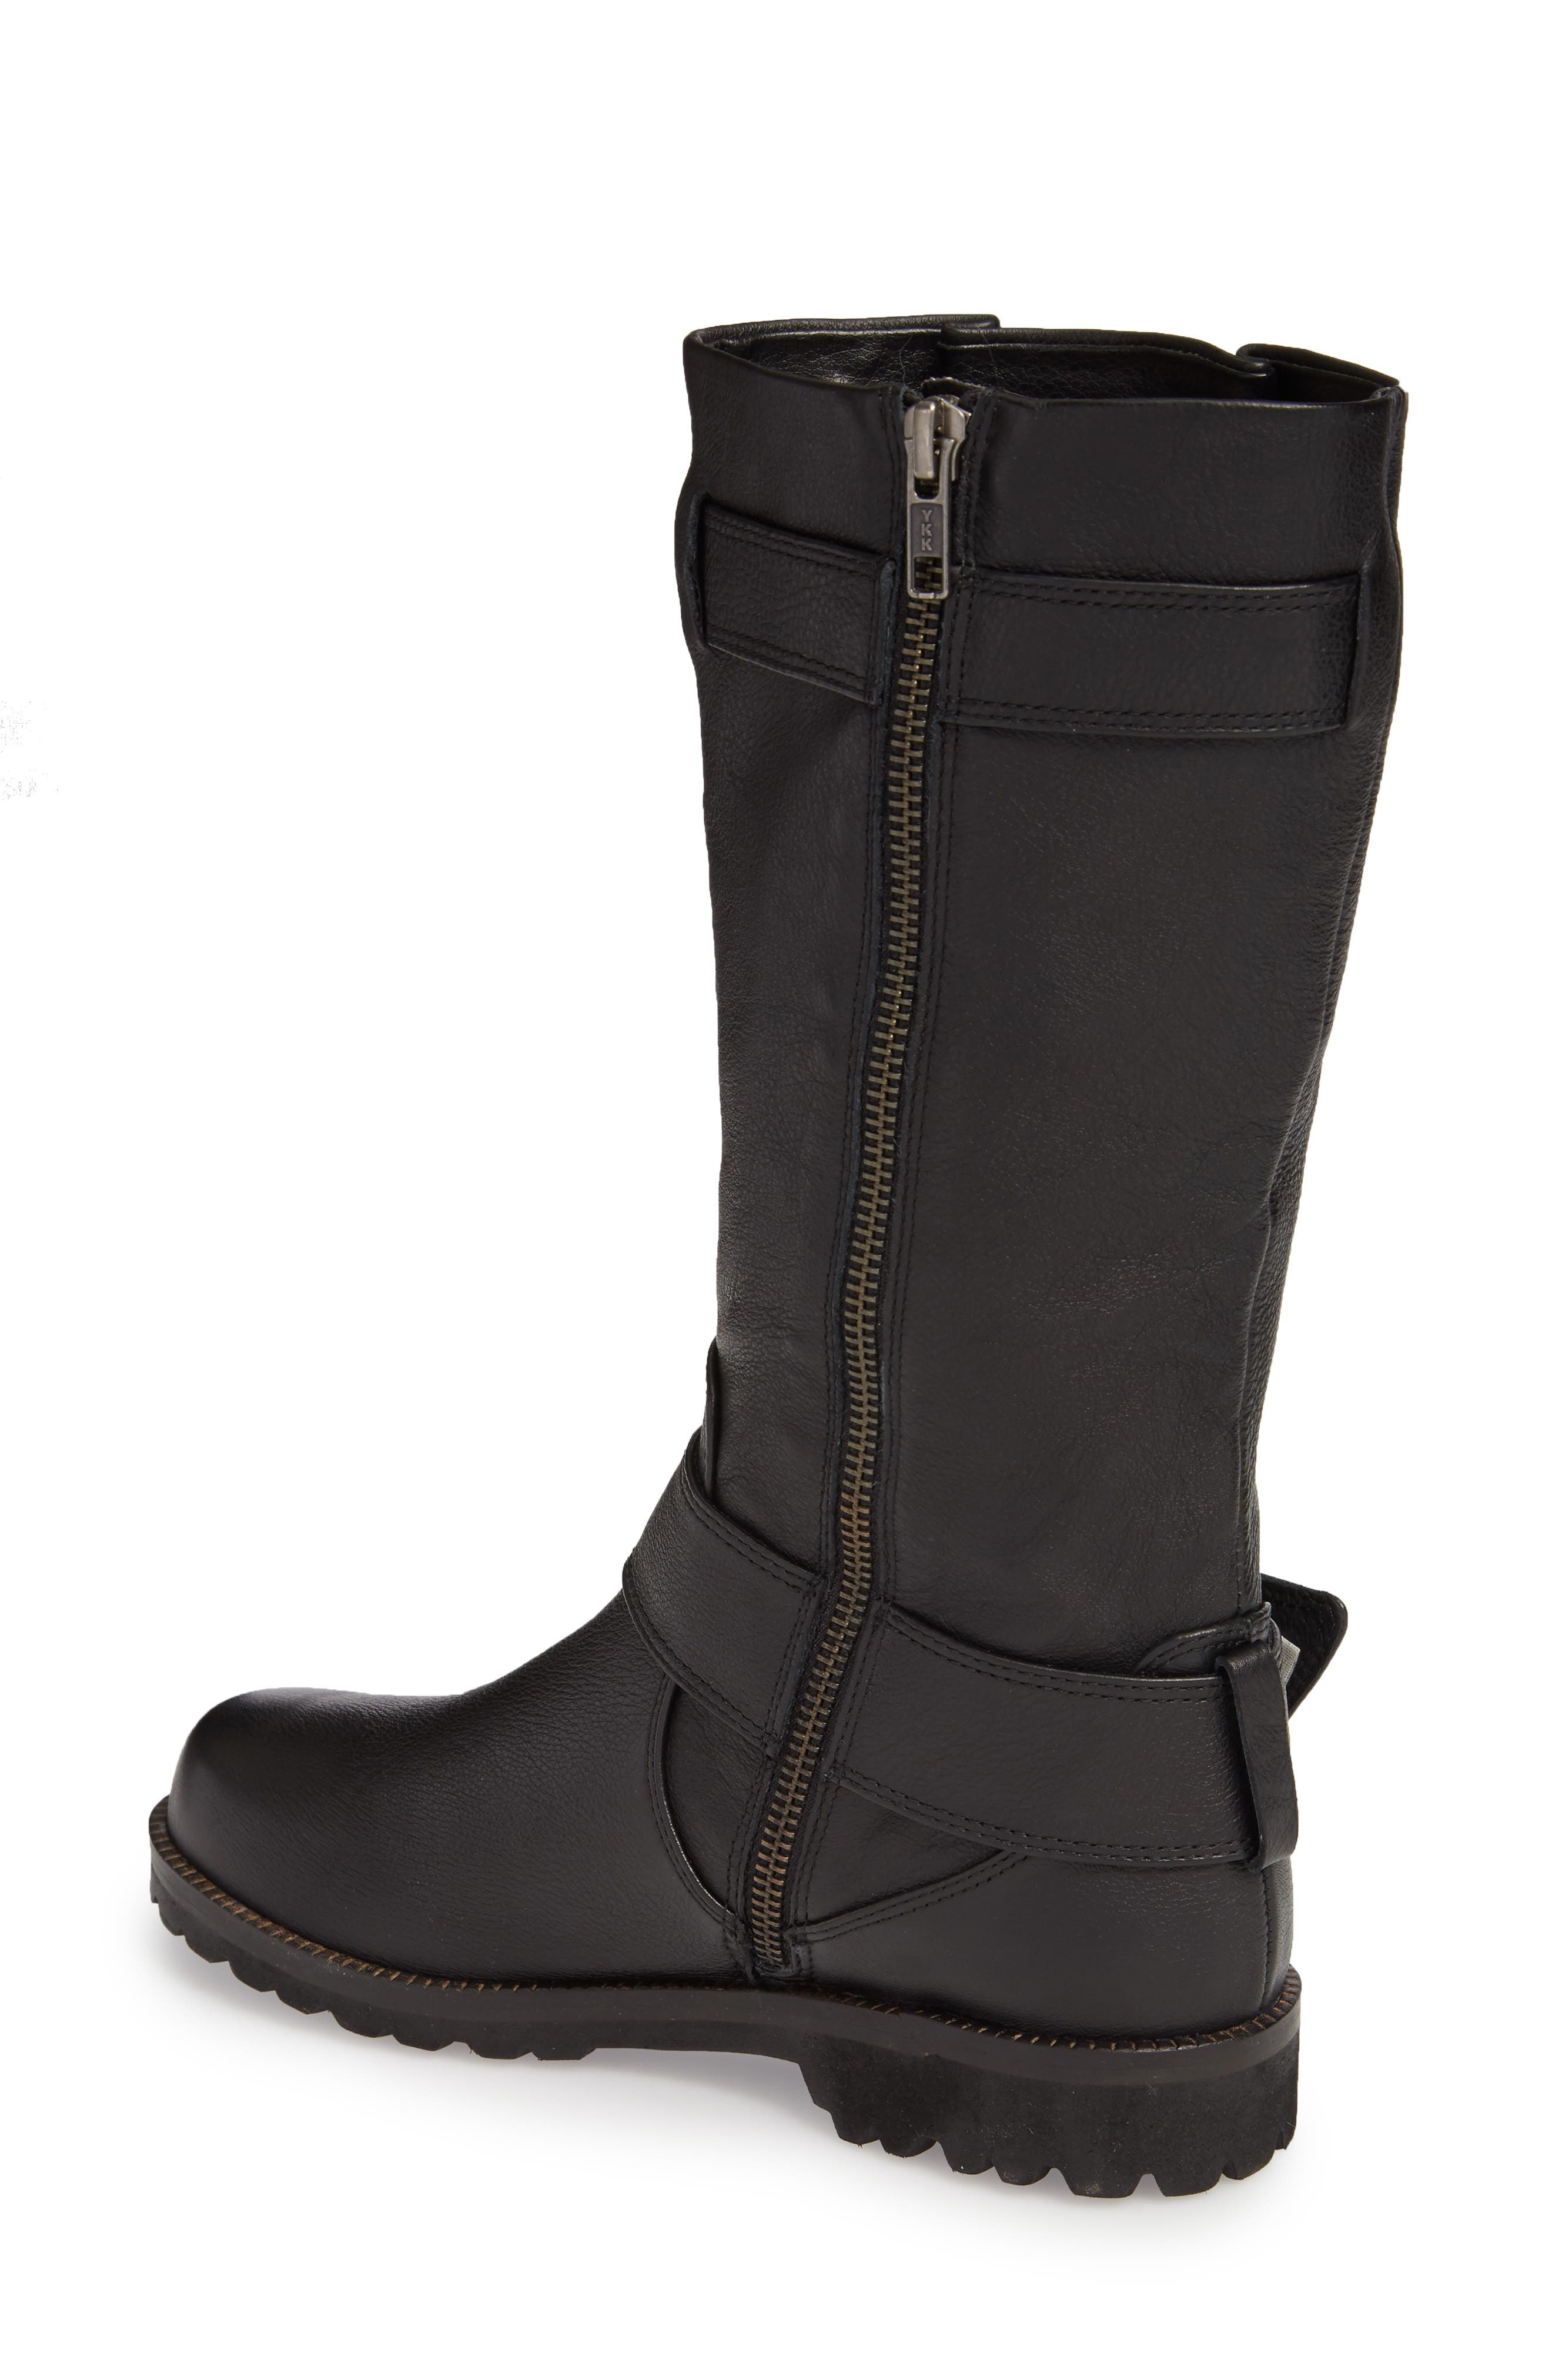 GENTLE SOULS BY KENNETH COLE, 'Buckled Up' Boot, Alternate thumbnail 2, color, BLACK